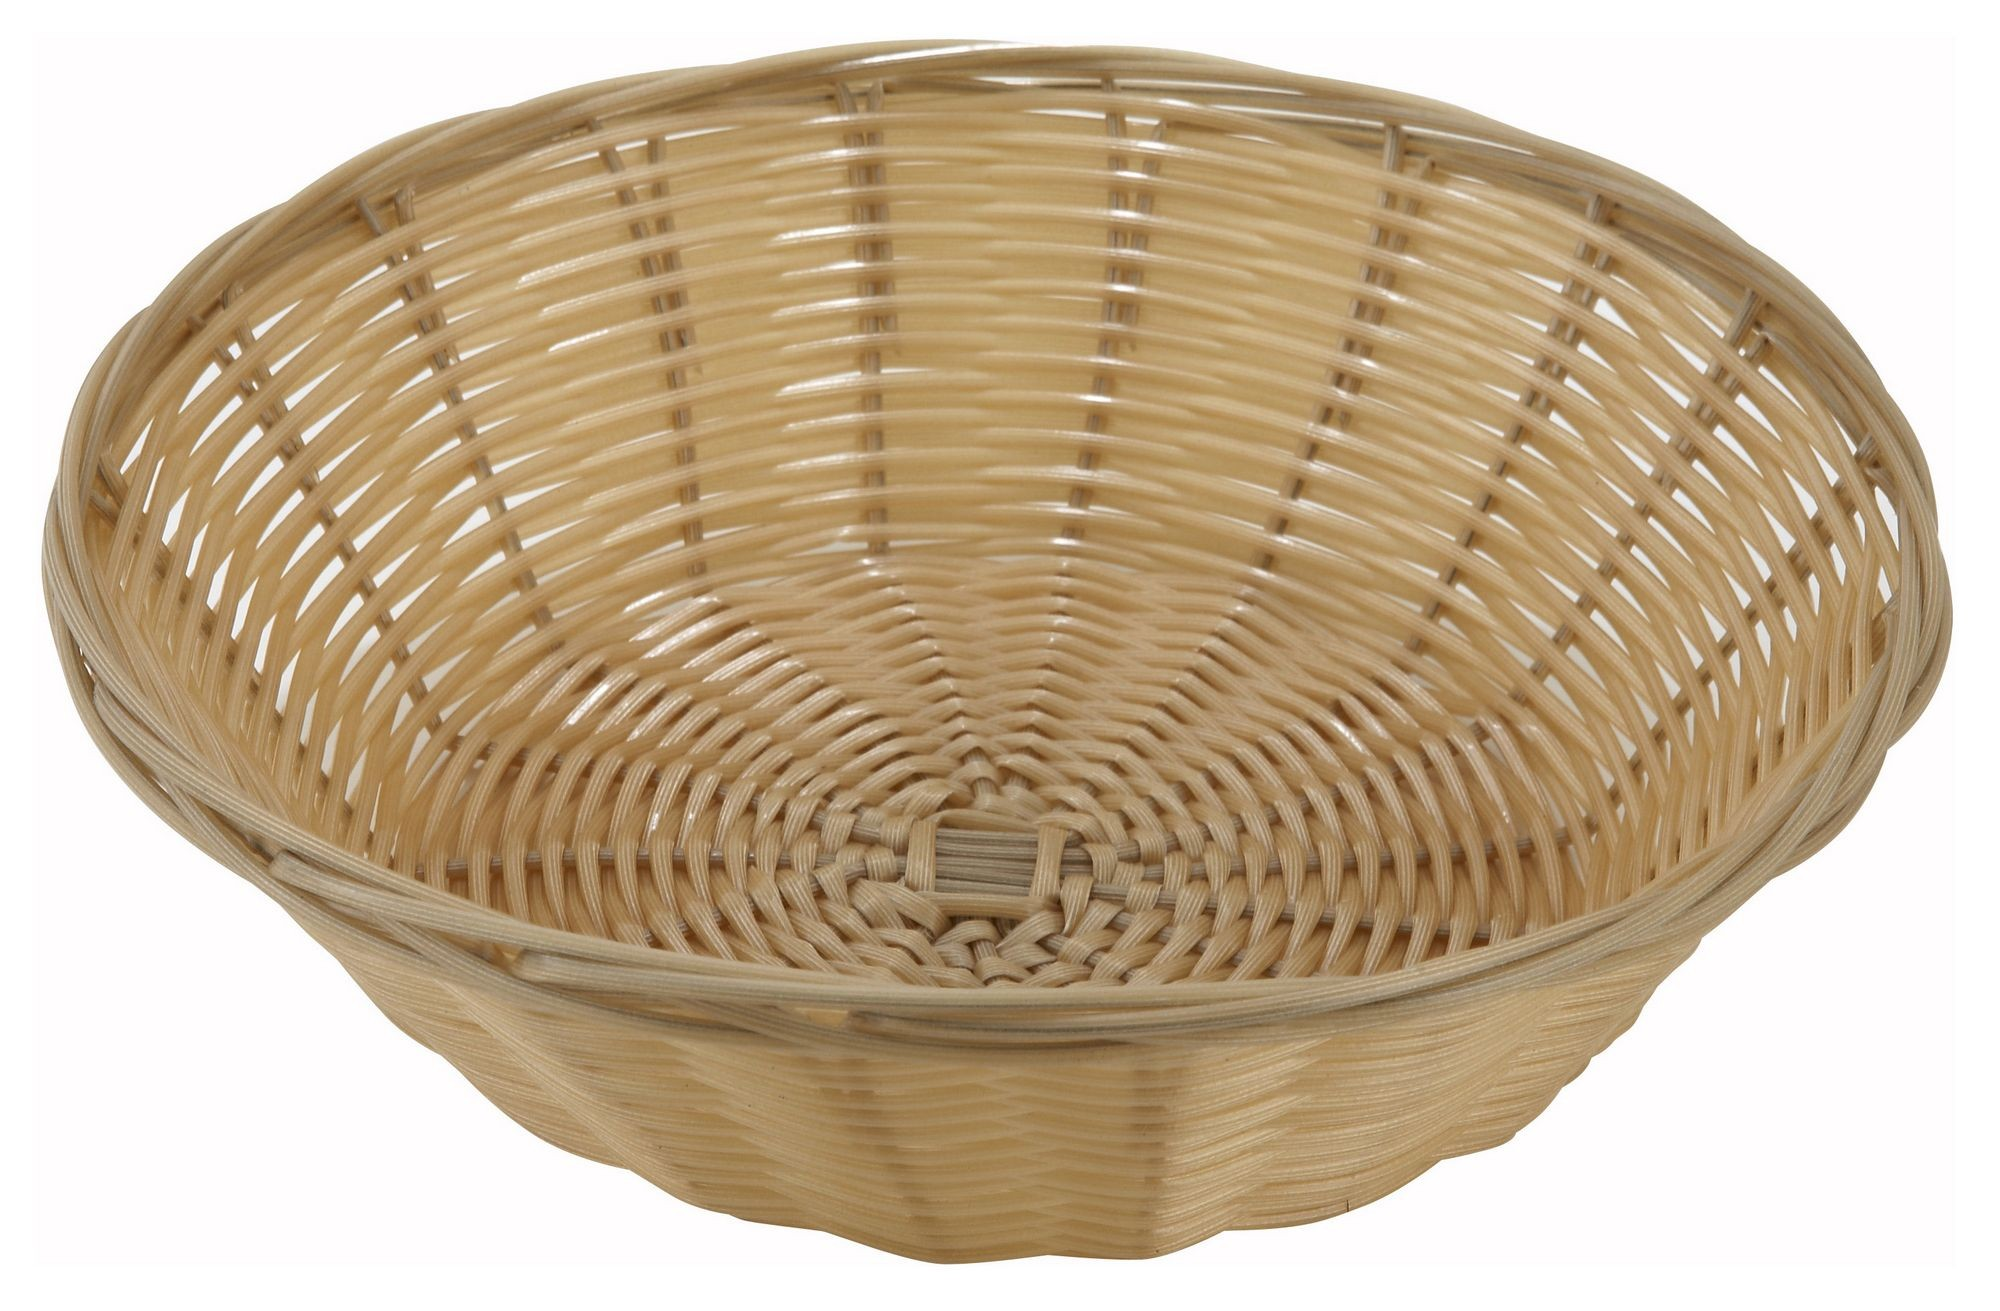 "Winco pwbn-9r Round Natural Woven Basket 9"" x 2-3/4"""